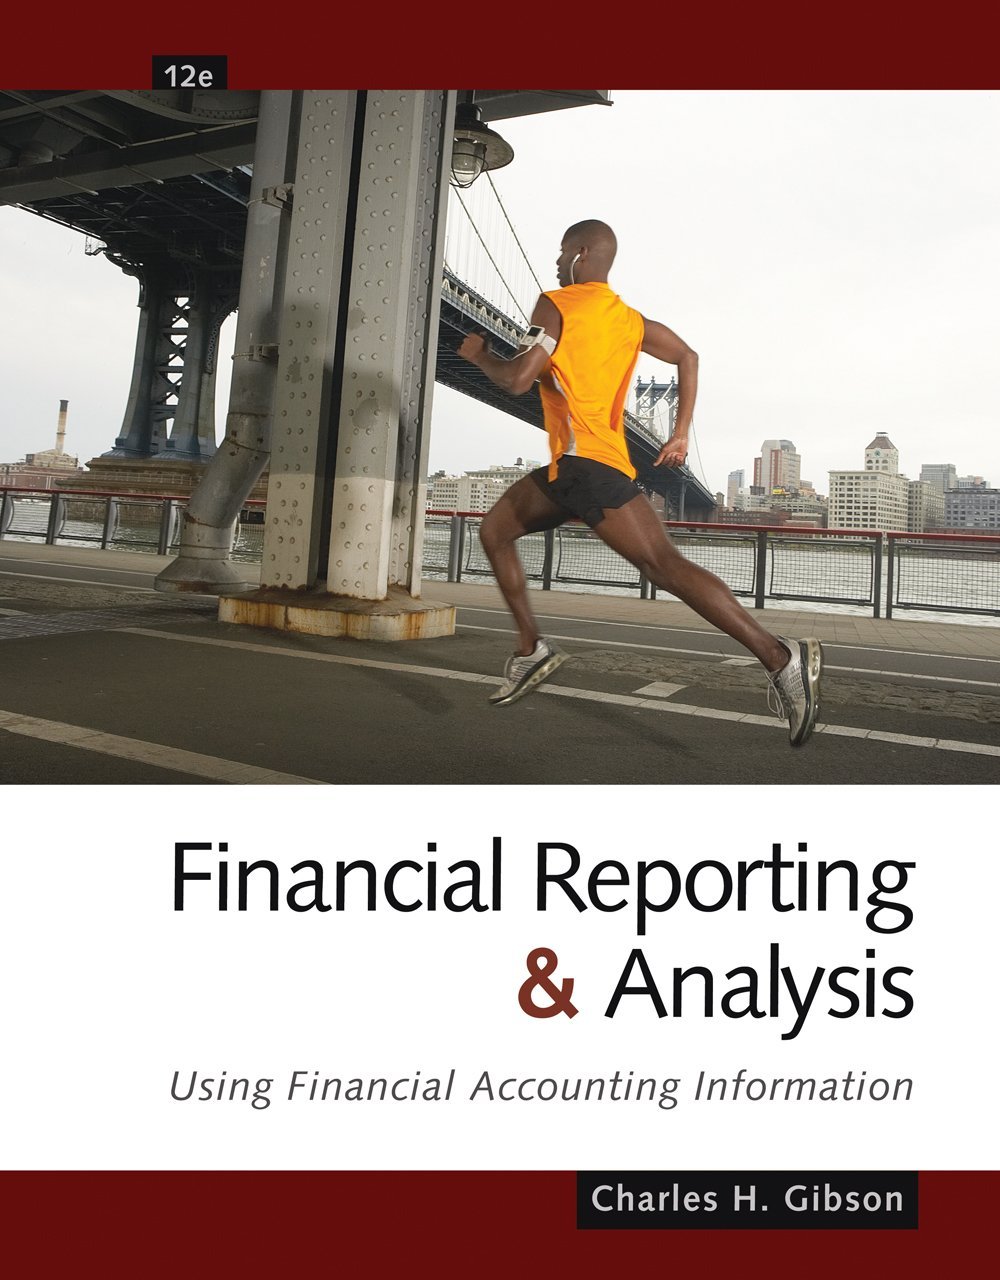 Financial Reporting and Analysis Using Financial Accounting Information 12th Edition By Charles Gibson - Test Bank